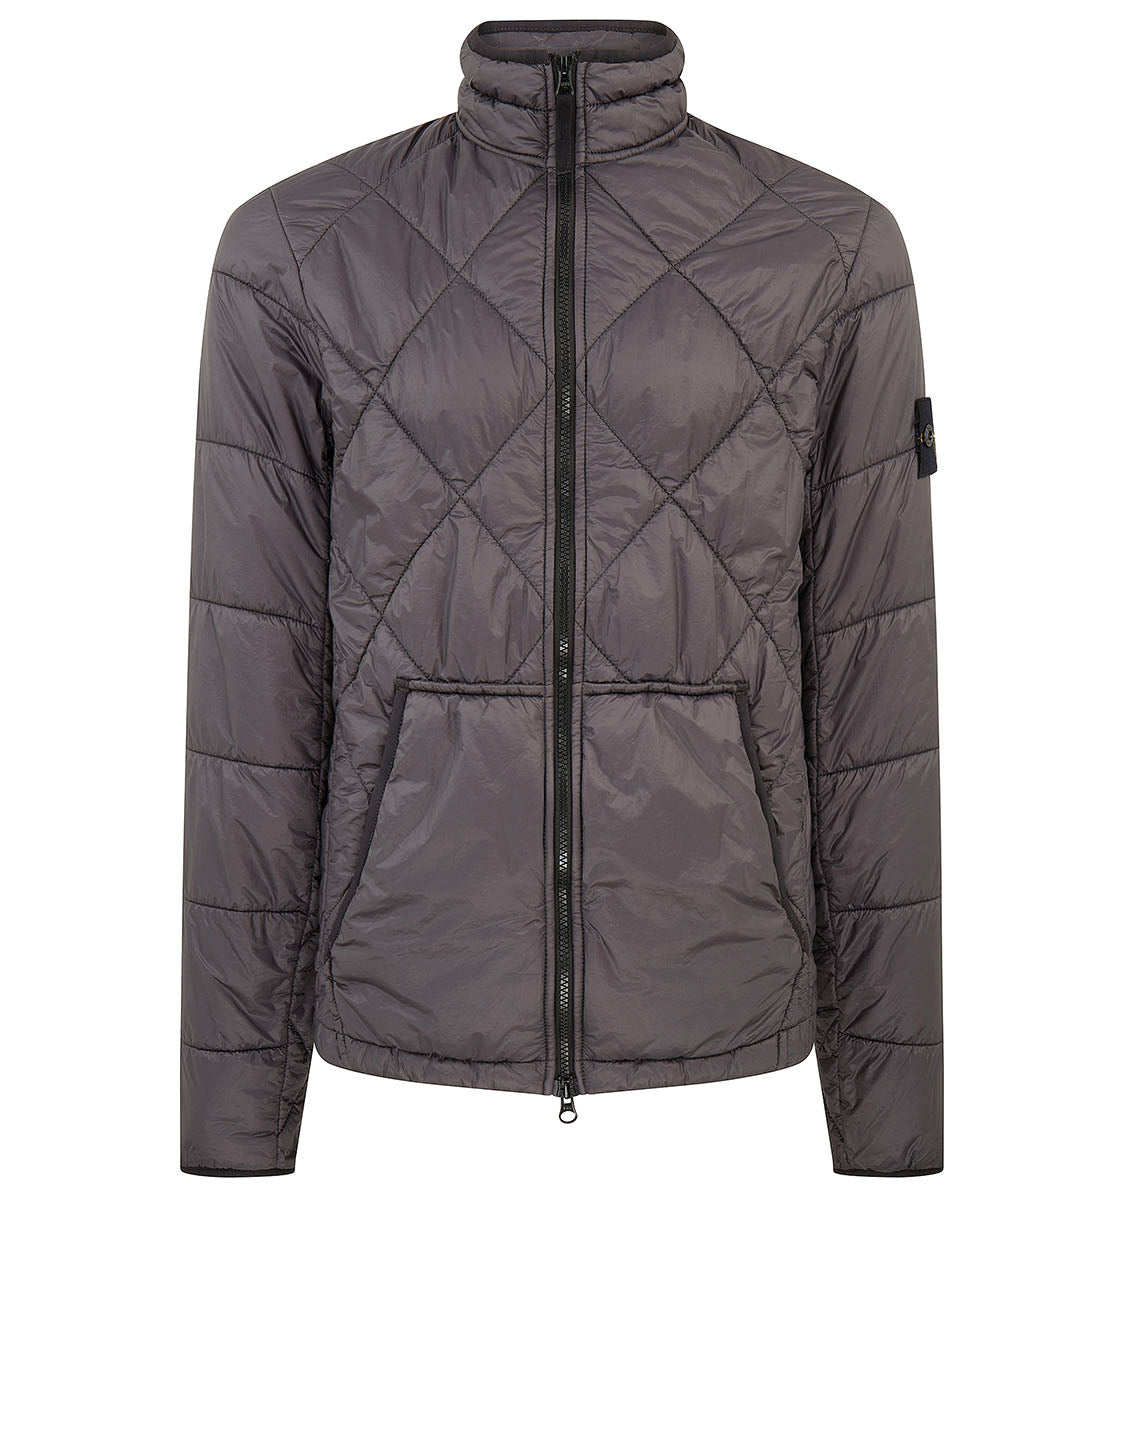 40424 GARMENT DYED QUILTED MICRO YARN Jacket in Charcoal